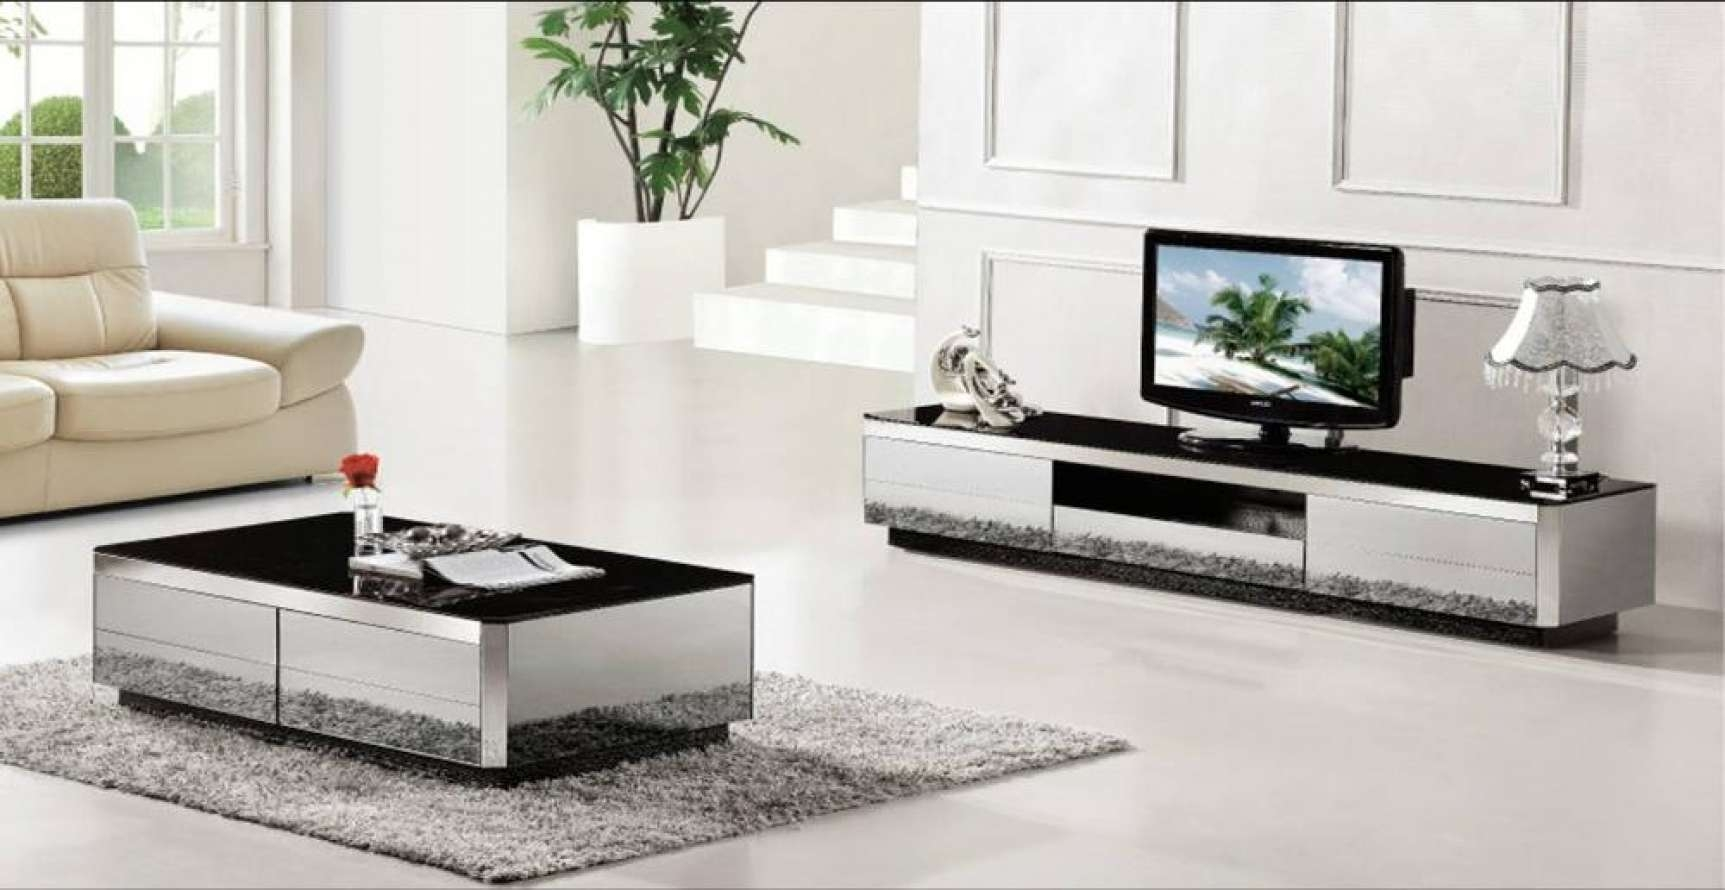 Coffee Table : Tv Stands Stand And Coffee Table Diy Matching Intended For Coffee Tables And Tv Stands (View 10 of 15)